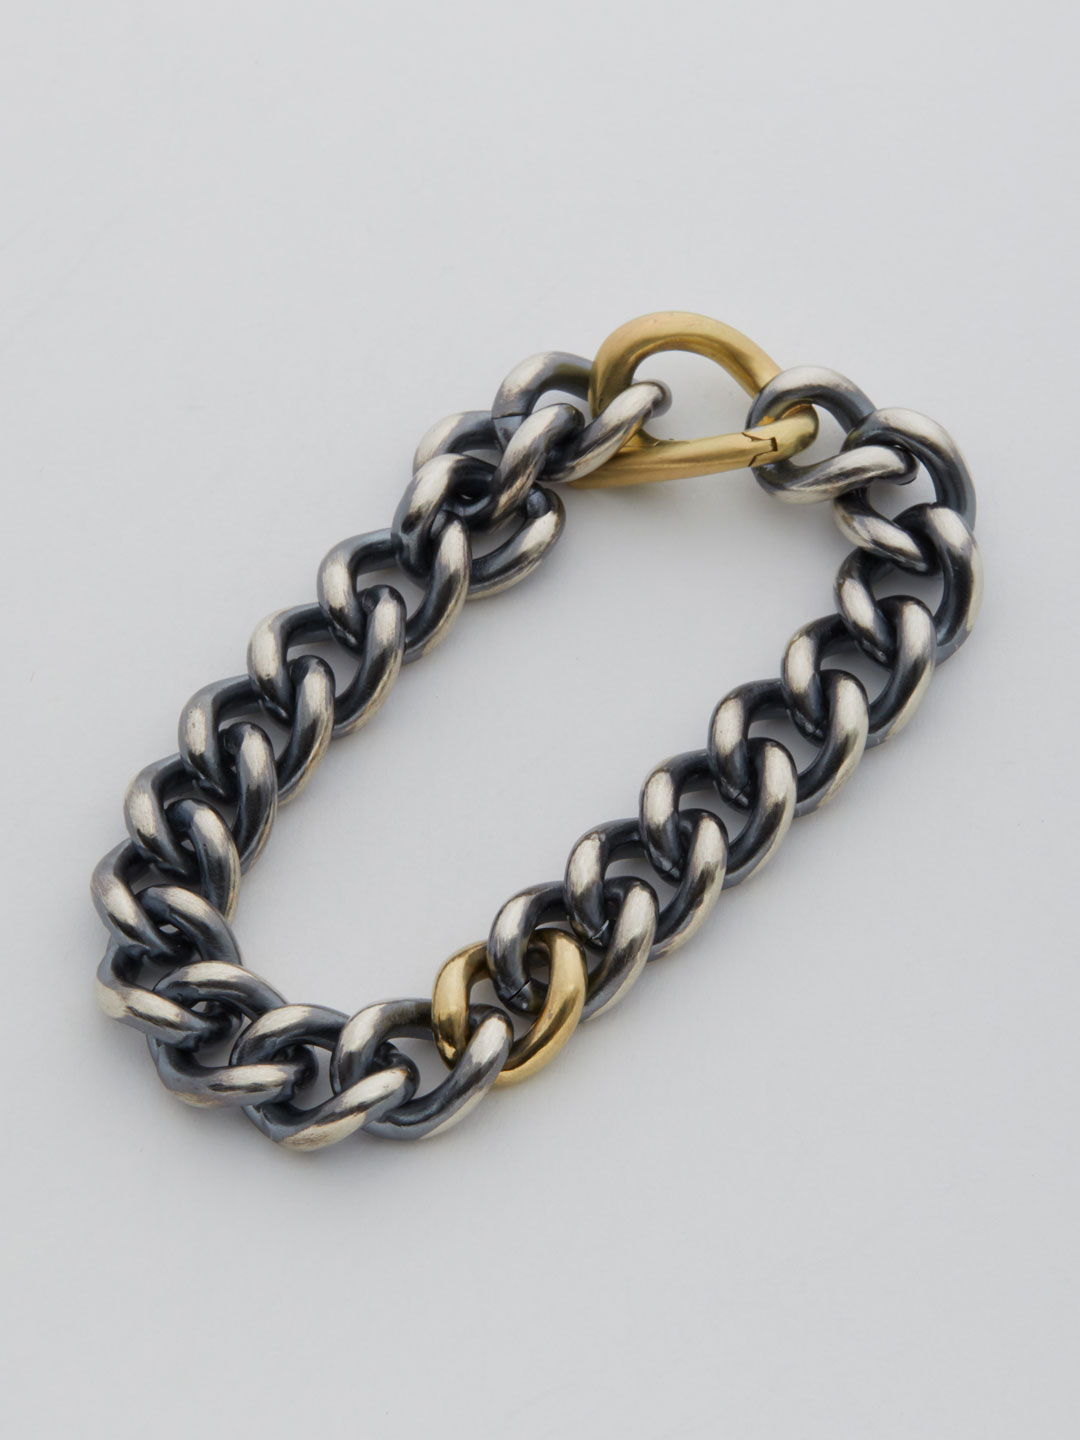 Humete Chain Bracelet 11 Large Clasp / 2S  - Silver